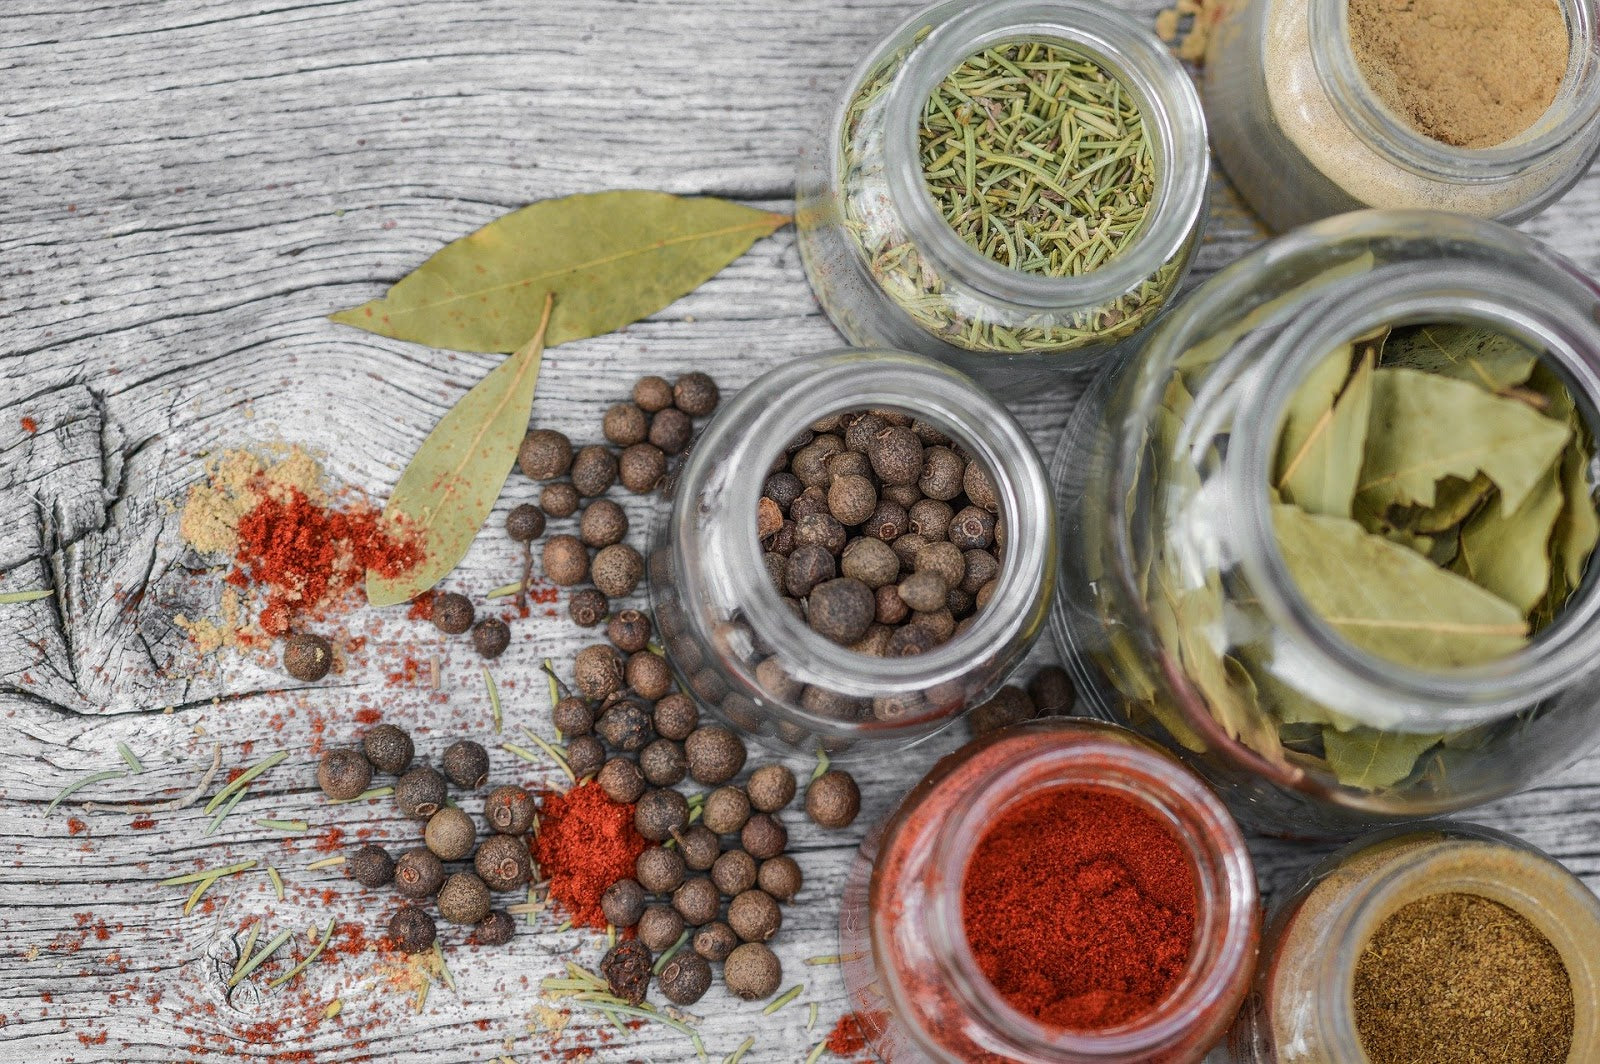 Herbs for inflammation: jars of herbs and spices